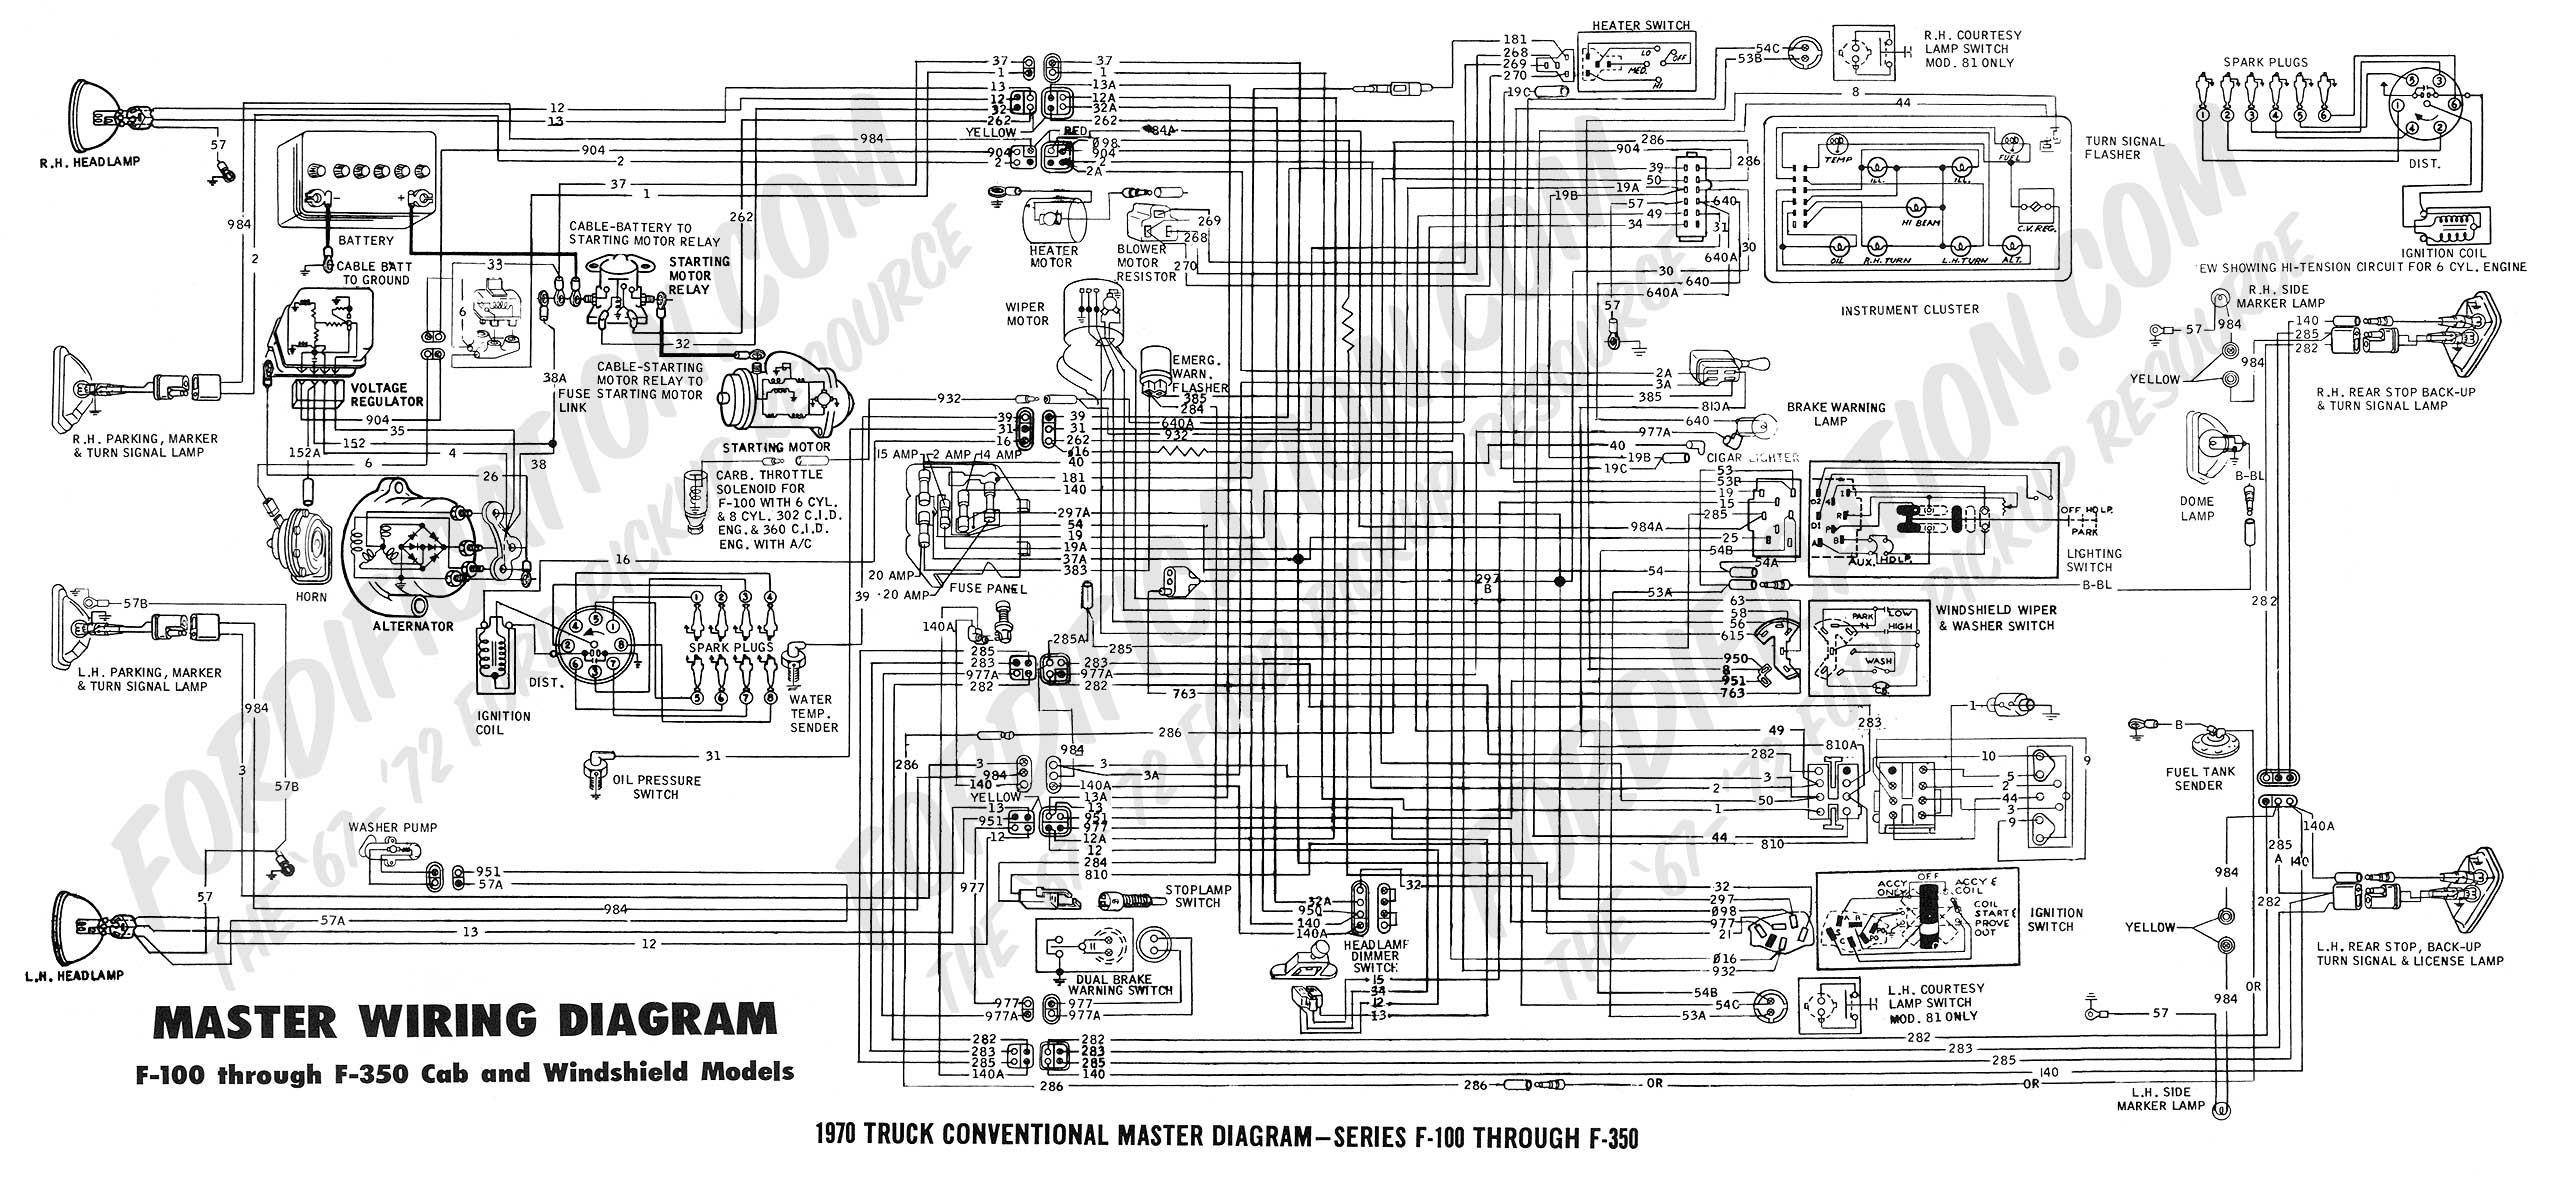 wiring diagram 70_master ford truck technical drawings and schematics section h wiring Rock Layes Tilt Diagram at n-0.co